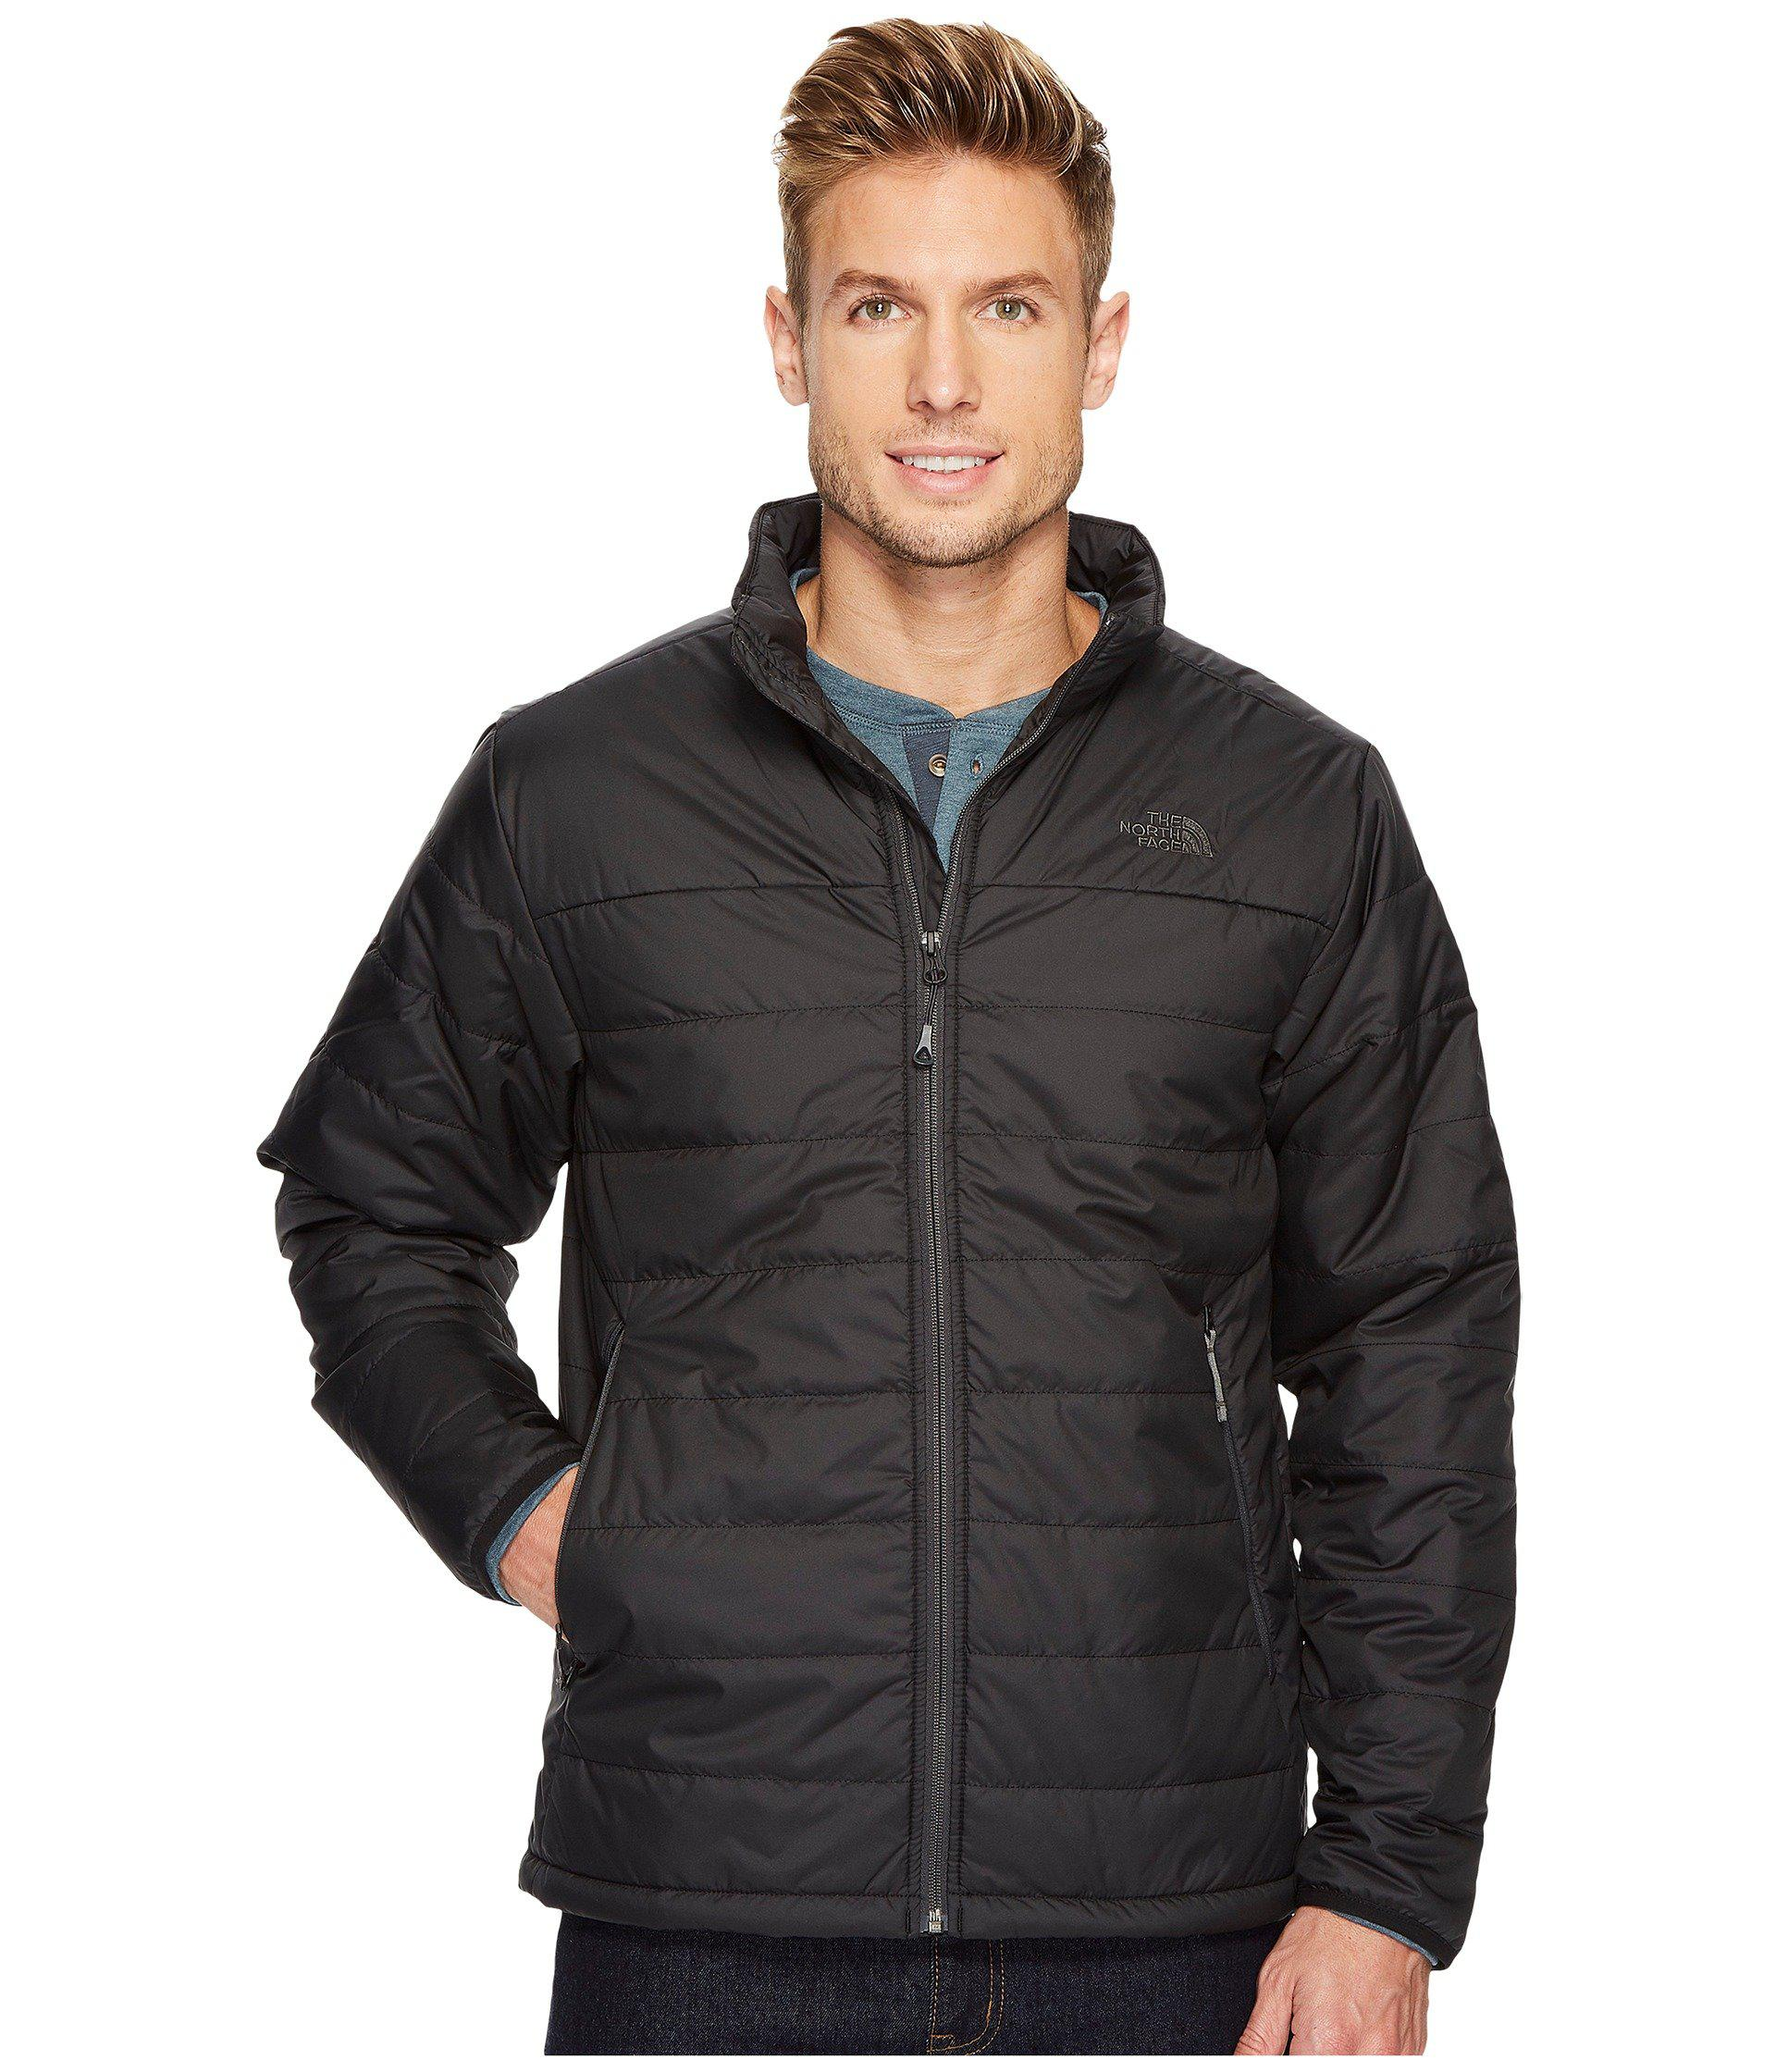 84856c4549 Lyst - The North Face Bombay Jacket (beech Green) Men s Jacket in ...